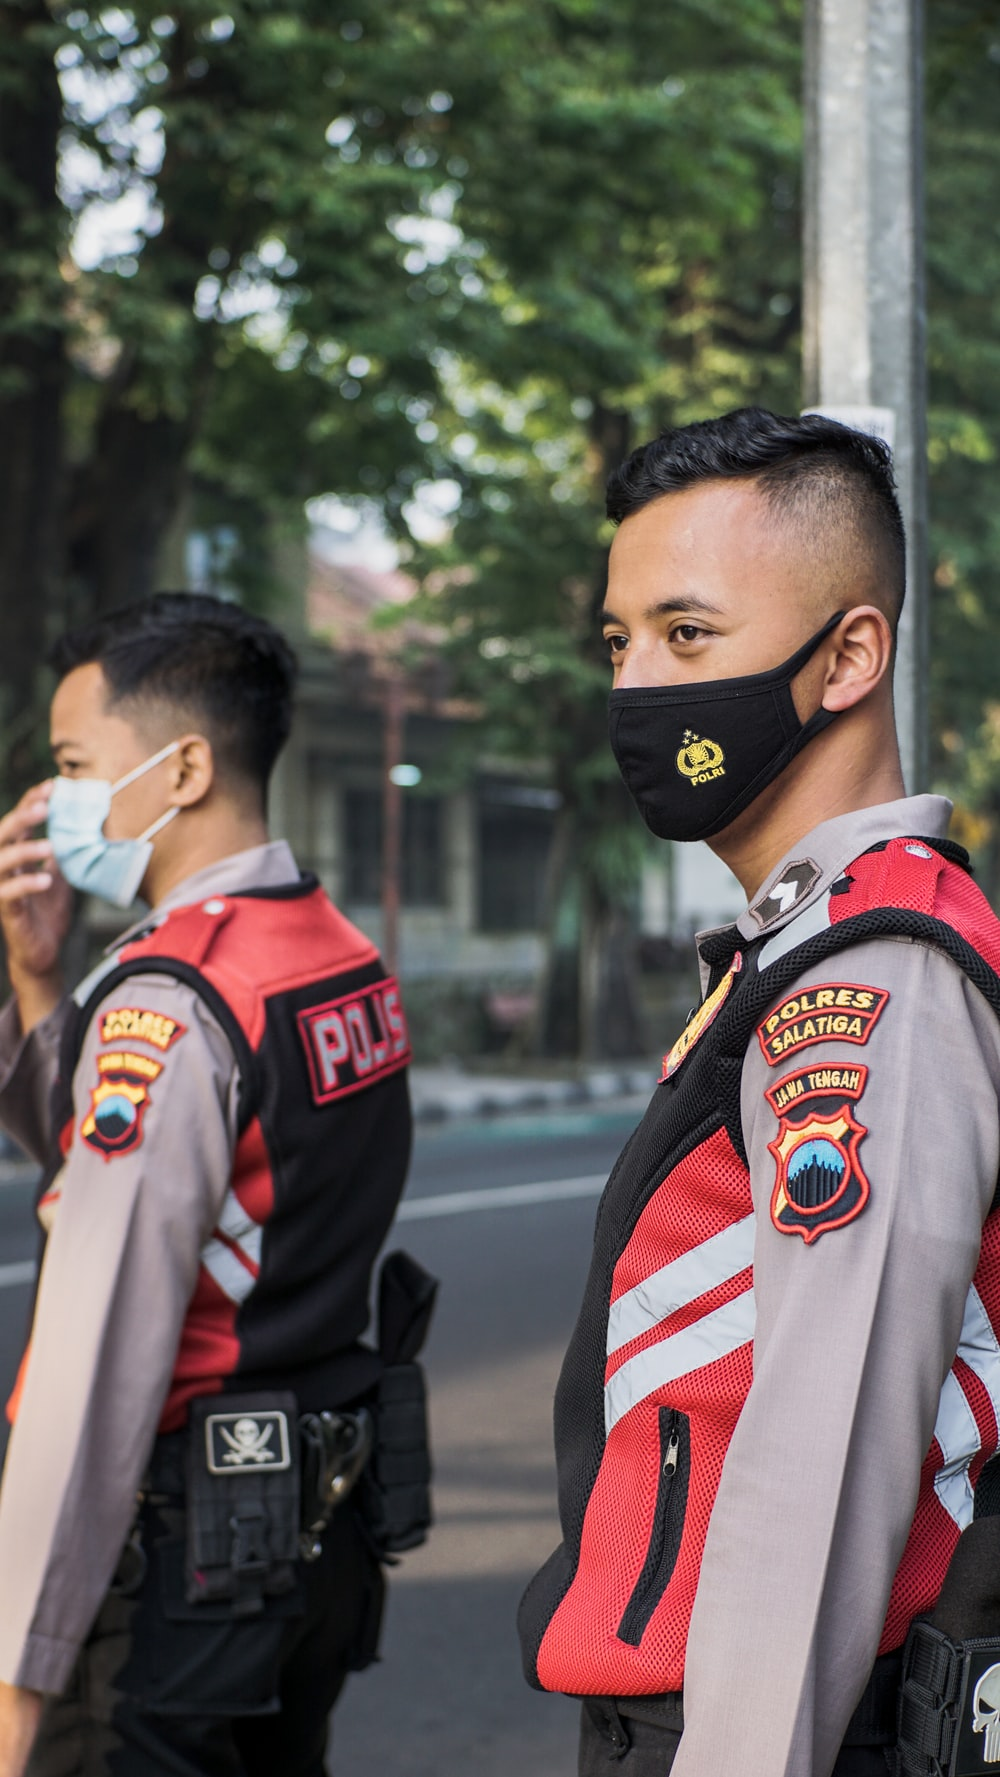 man in black and red jacket wearing black mask